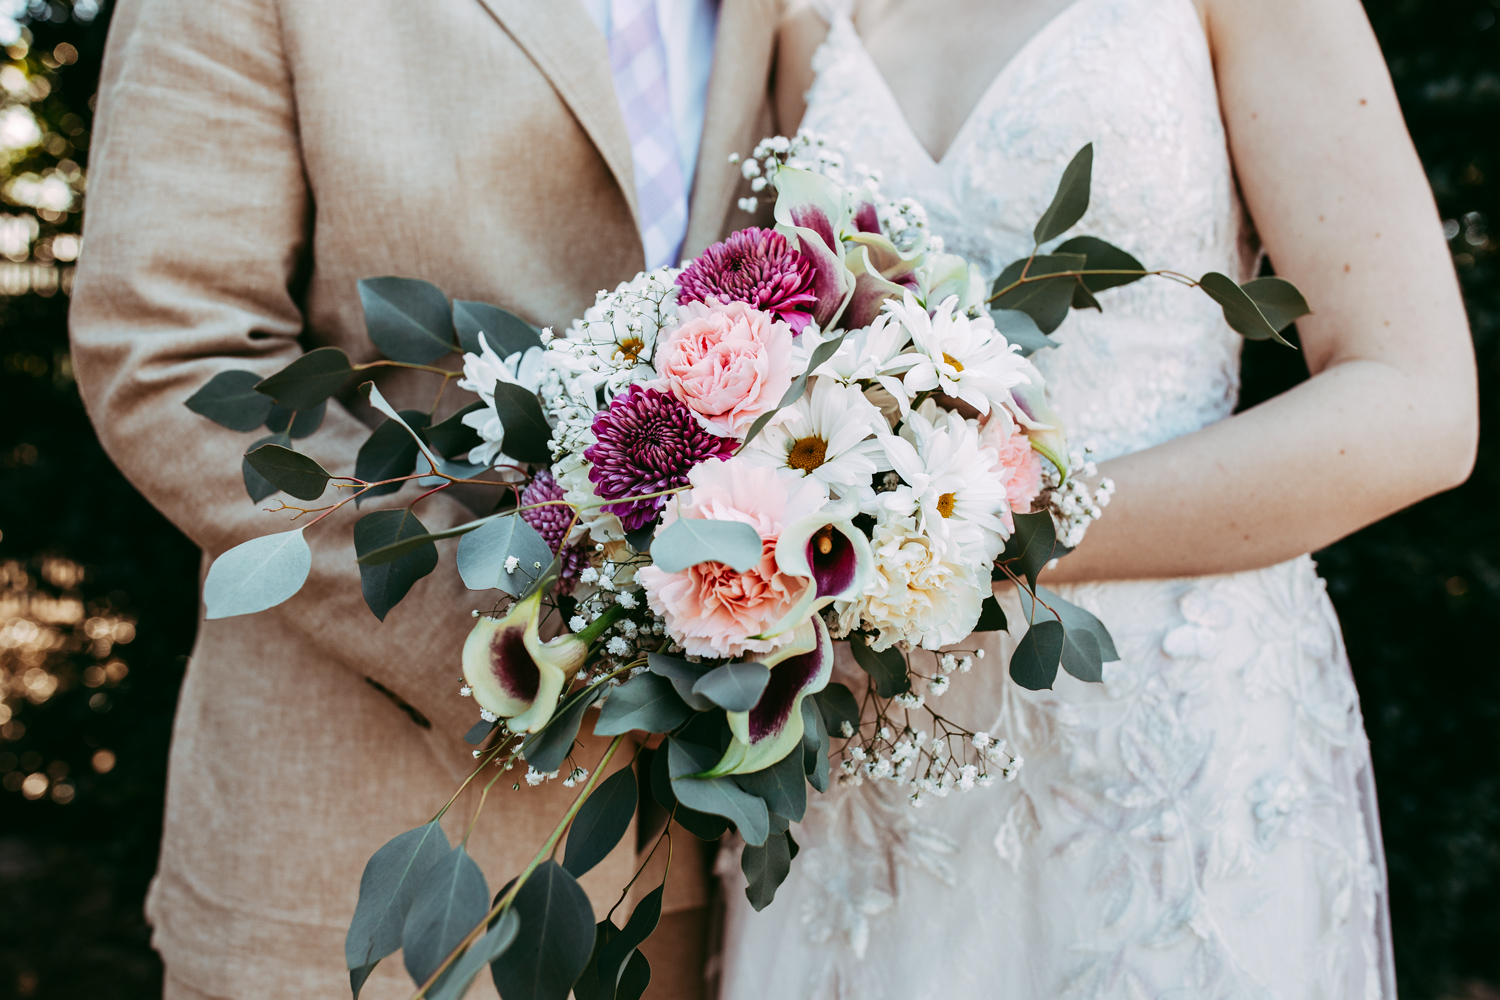 Close up photo of bridal bouquet from wedding at Will Rogers Park greenhouse in Oklahoma City, Oklahoma by Amanda Lynn Photography.